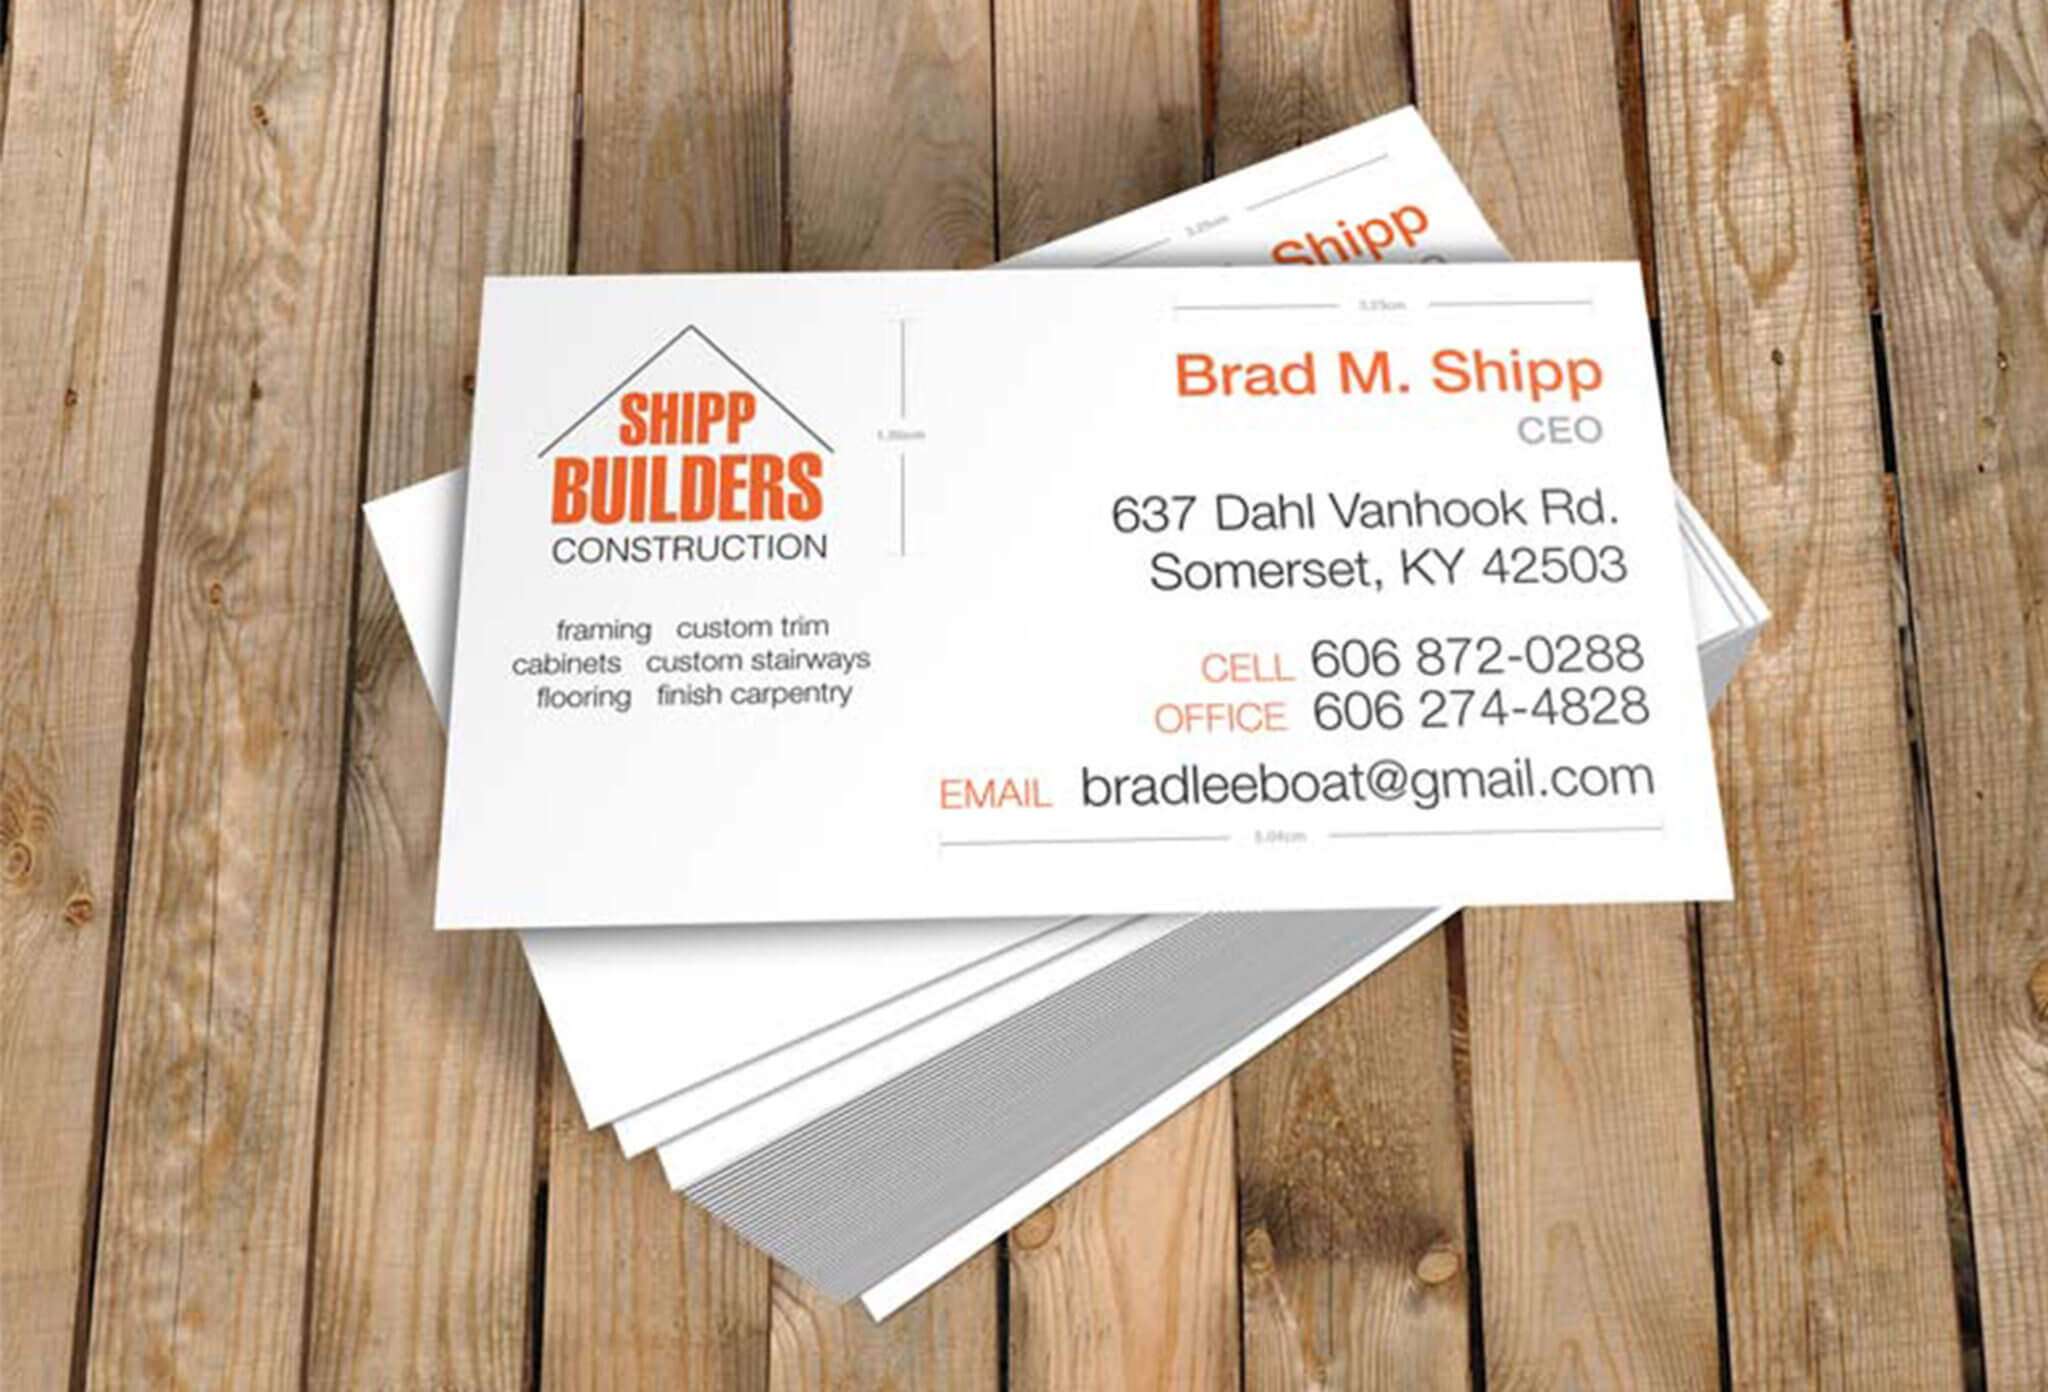 Bradd_Shipp_Business_Card_header